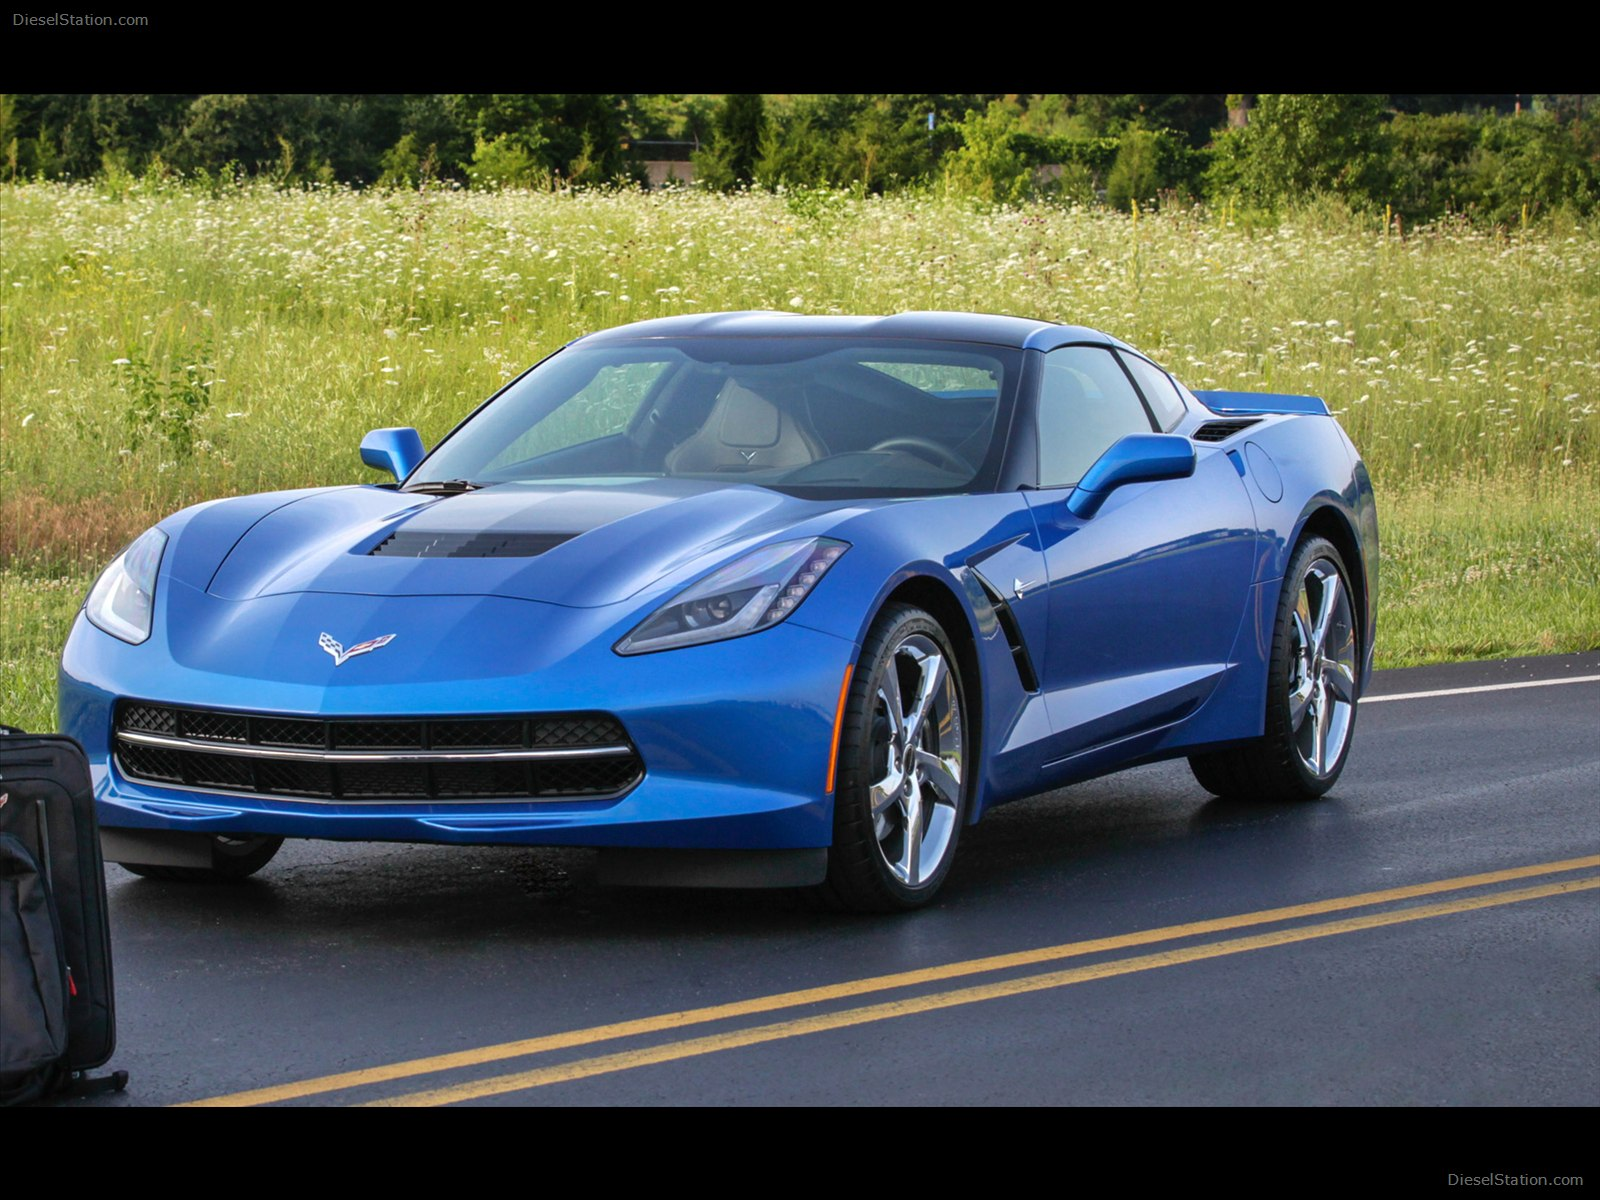 2019 Chevrolet Corvette Stingray Convertible EU Version photo - 3